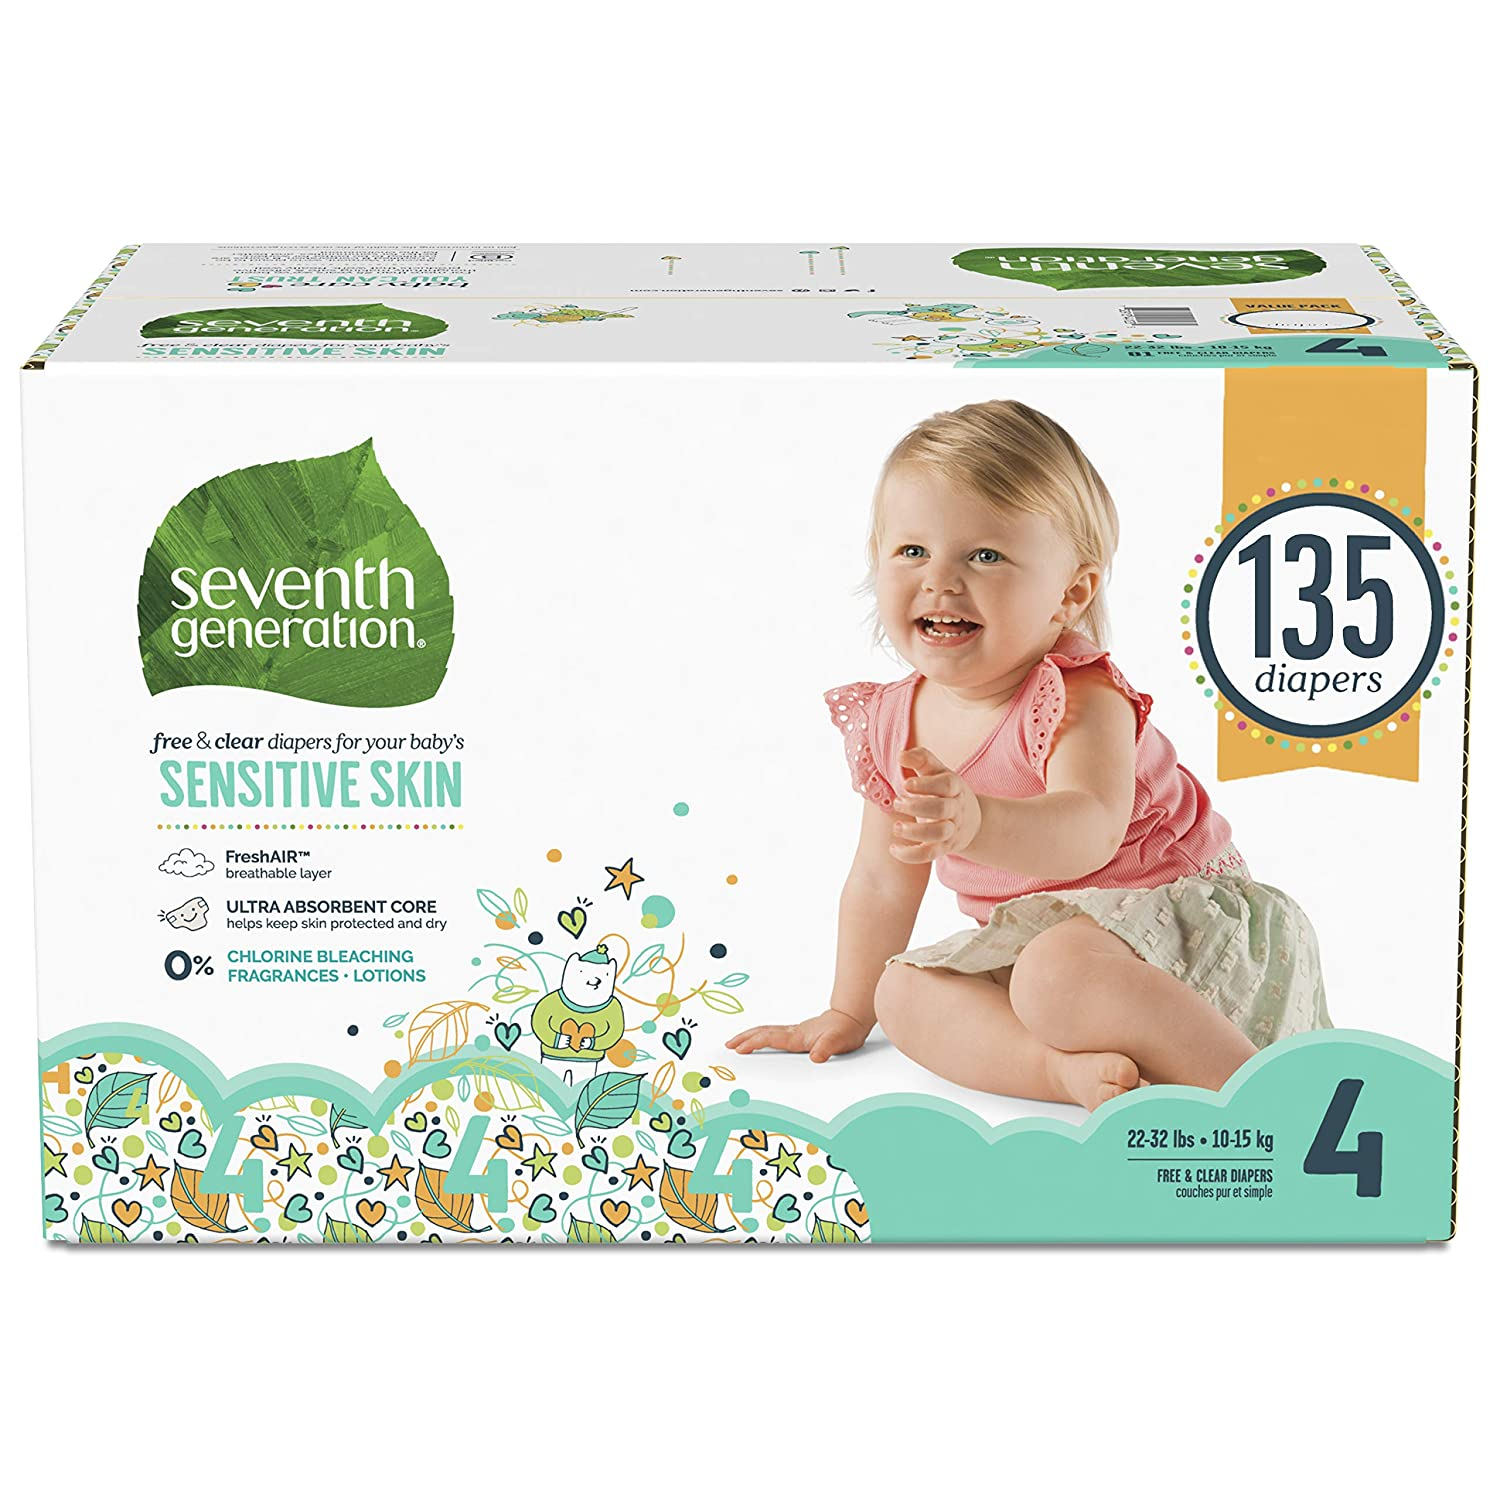 Top 7 Best Natural Disposable Diapers Reviews in 2020 2